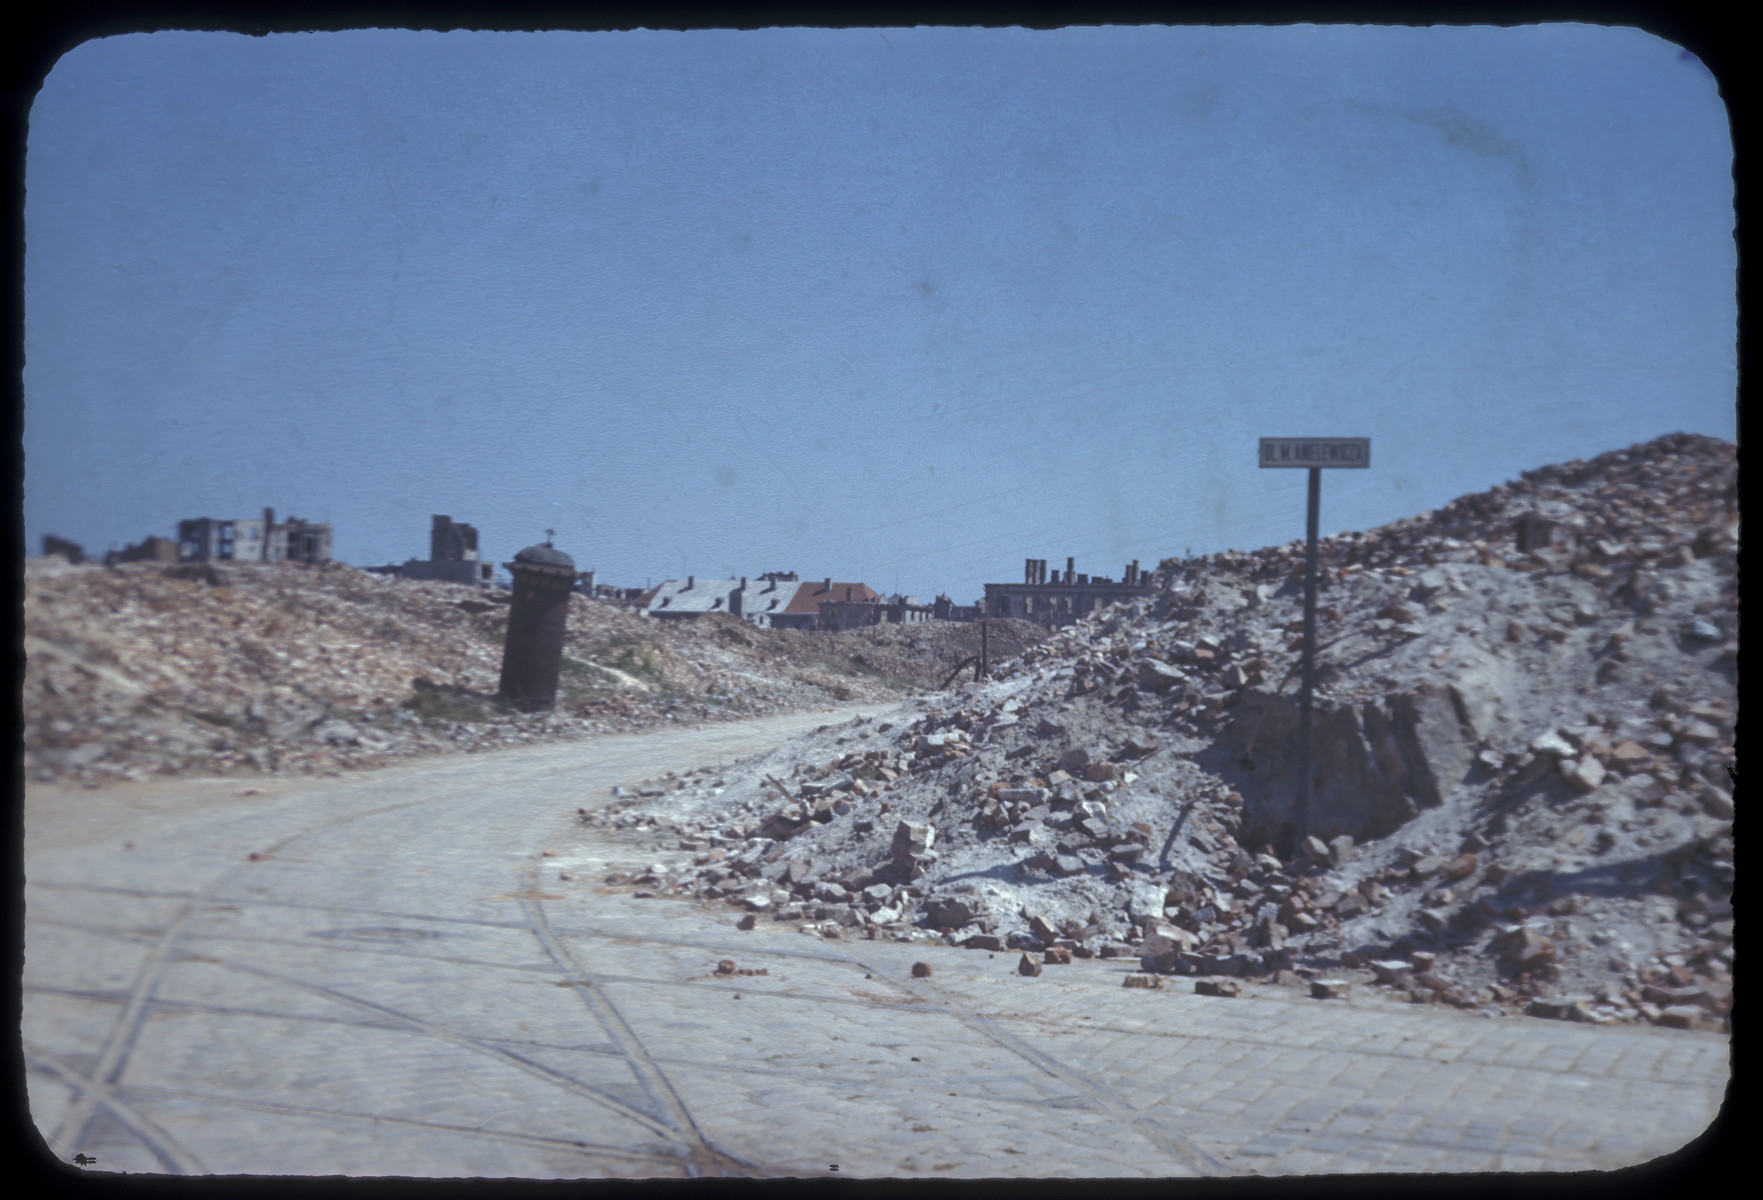 Postwar view of the ruins of the Warsaw ghetto.